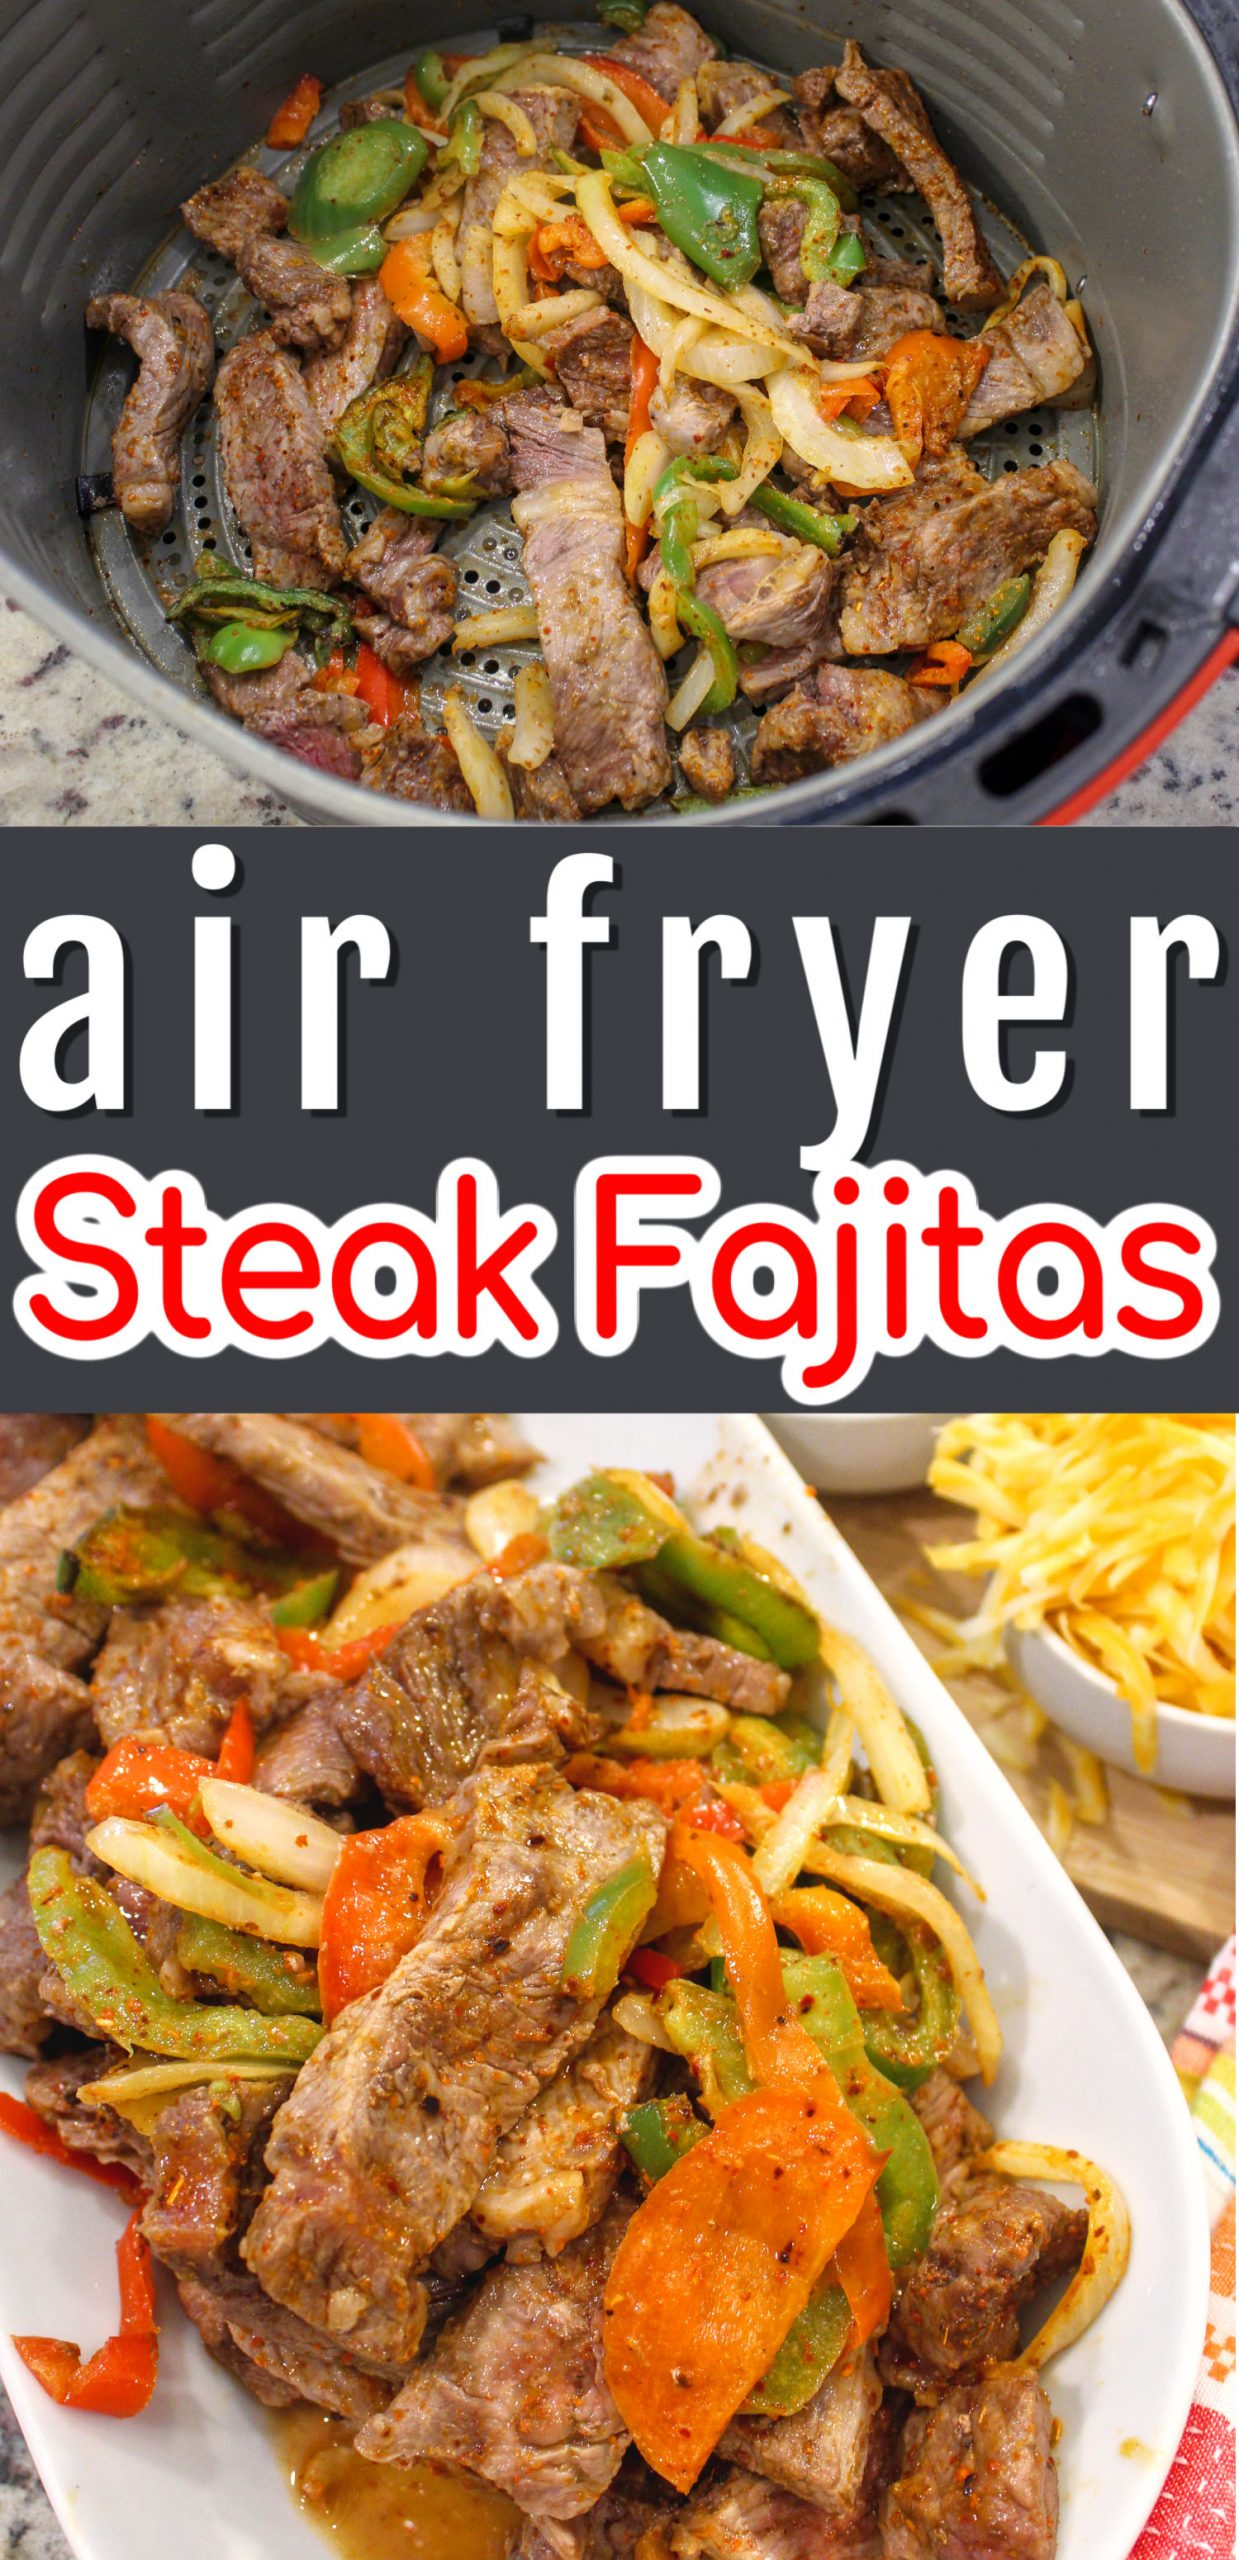 Air Fryer Steak Fajitas are my new favorite dinner! Peppers, onions, steak and some delicious seasoning - and in less than 15 minutes - it's FAJITA TIME!!!! via @foodhussy